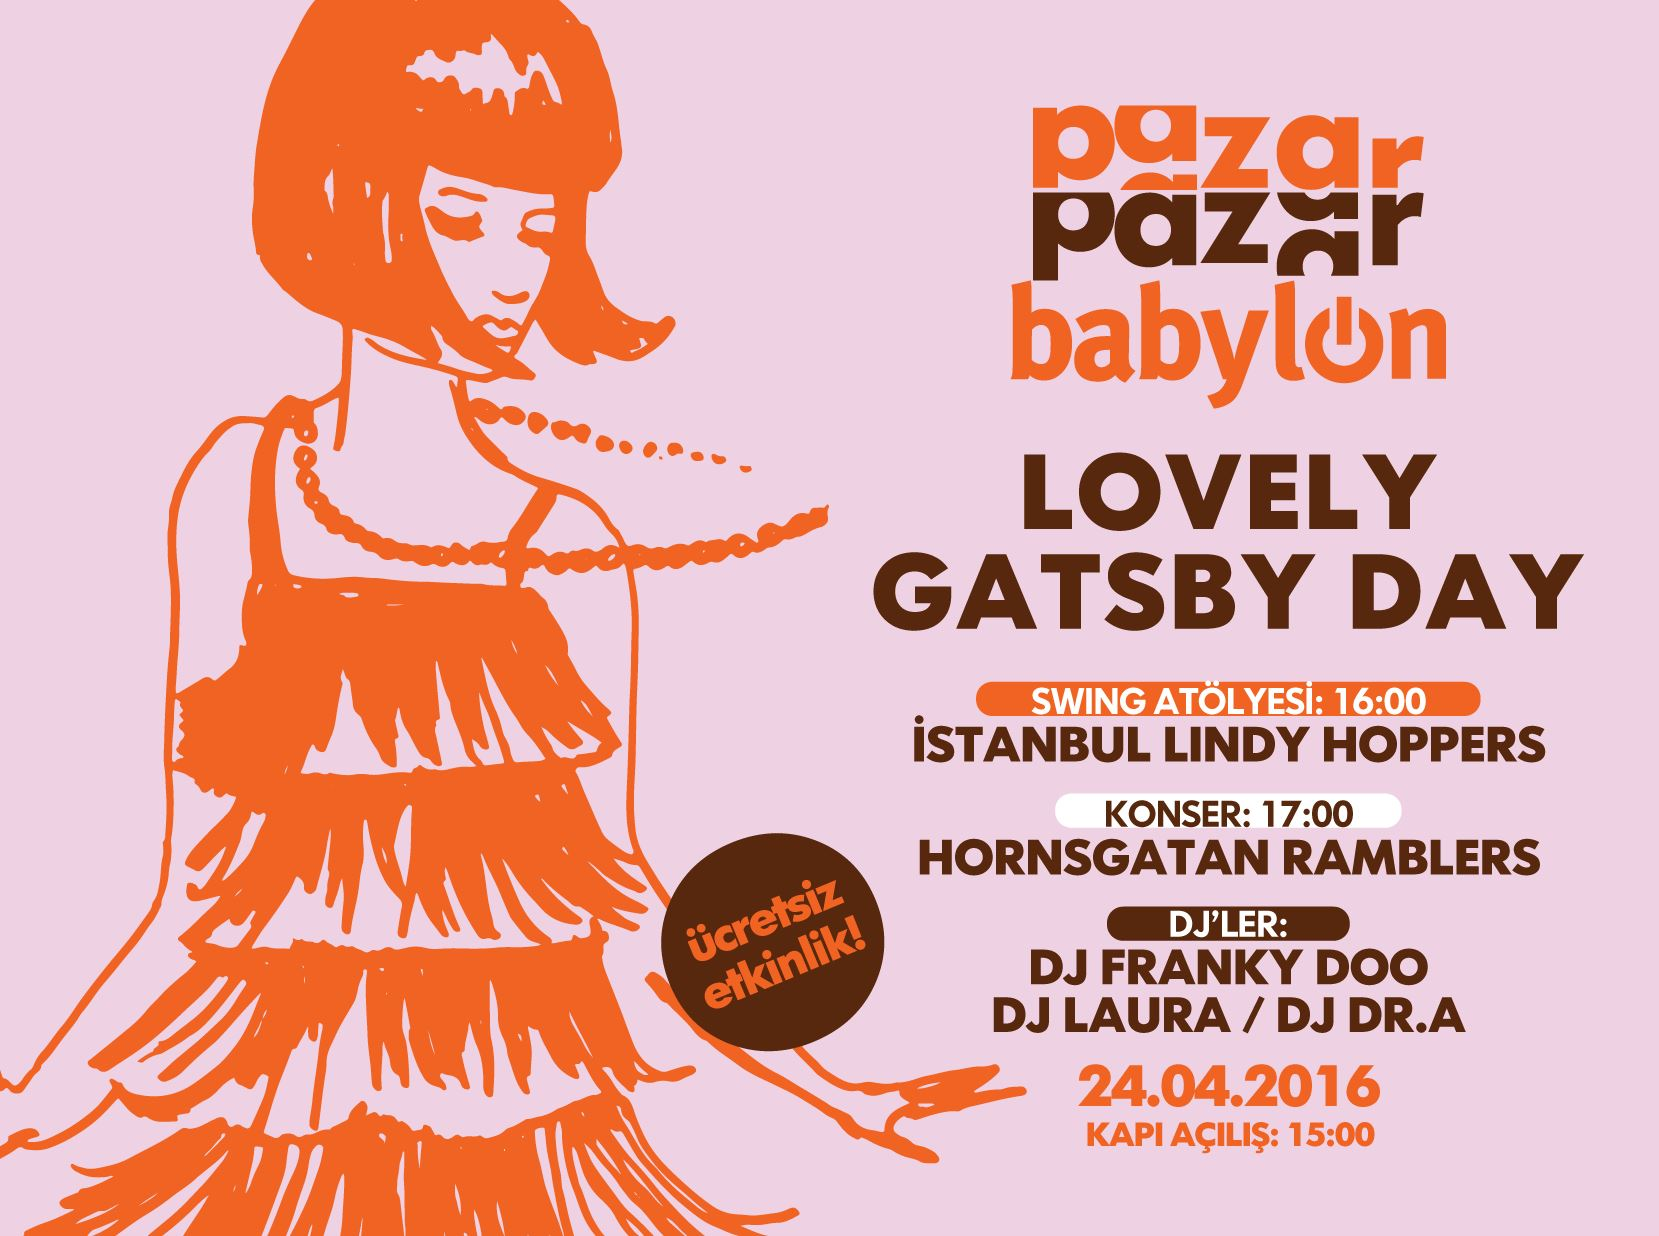 Pazar Pazar Babylon: Lovely Gatsby Day